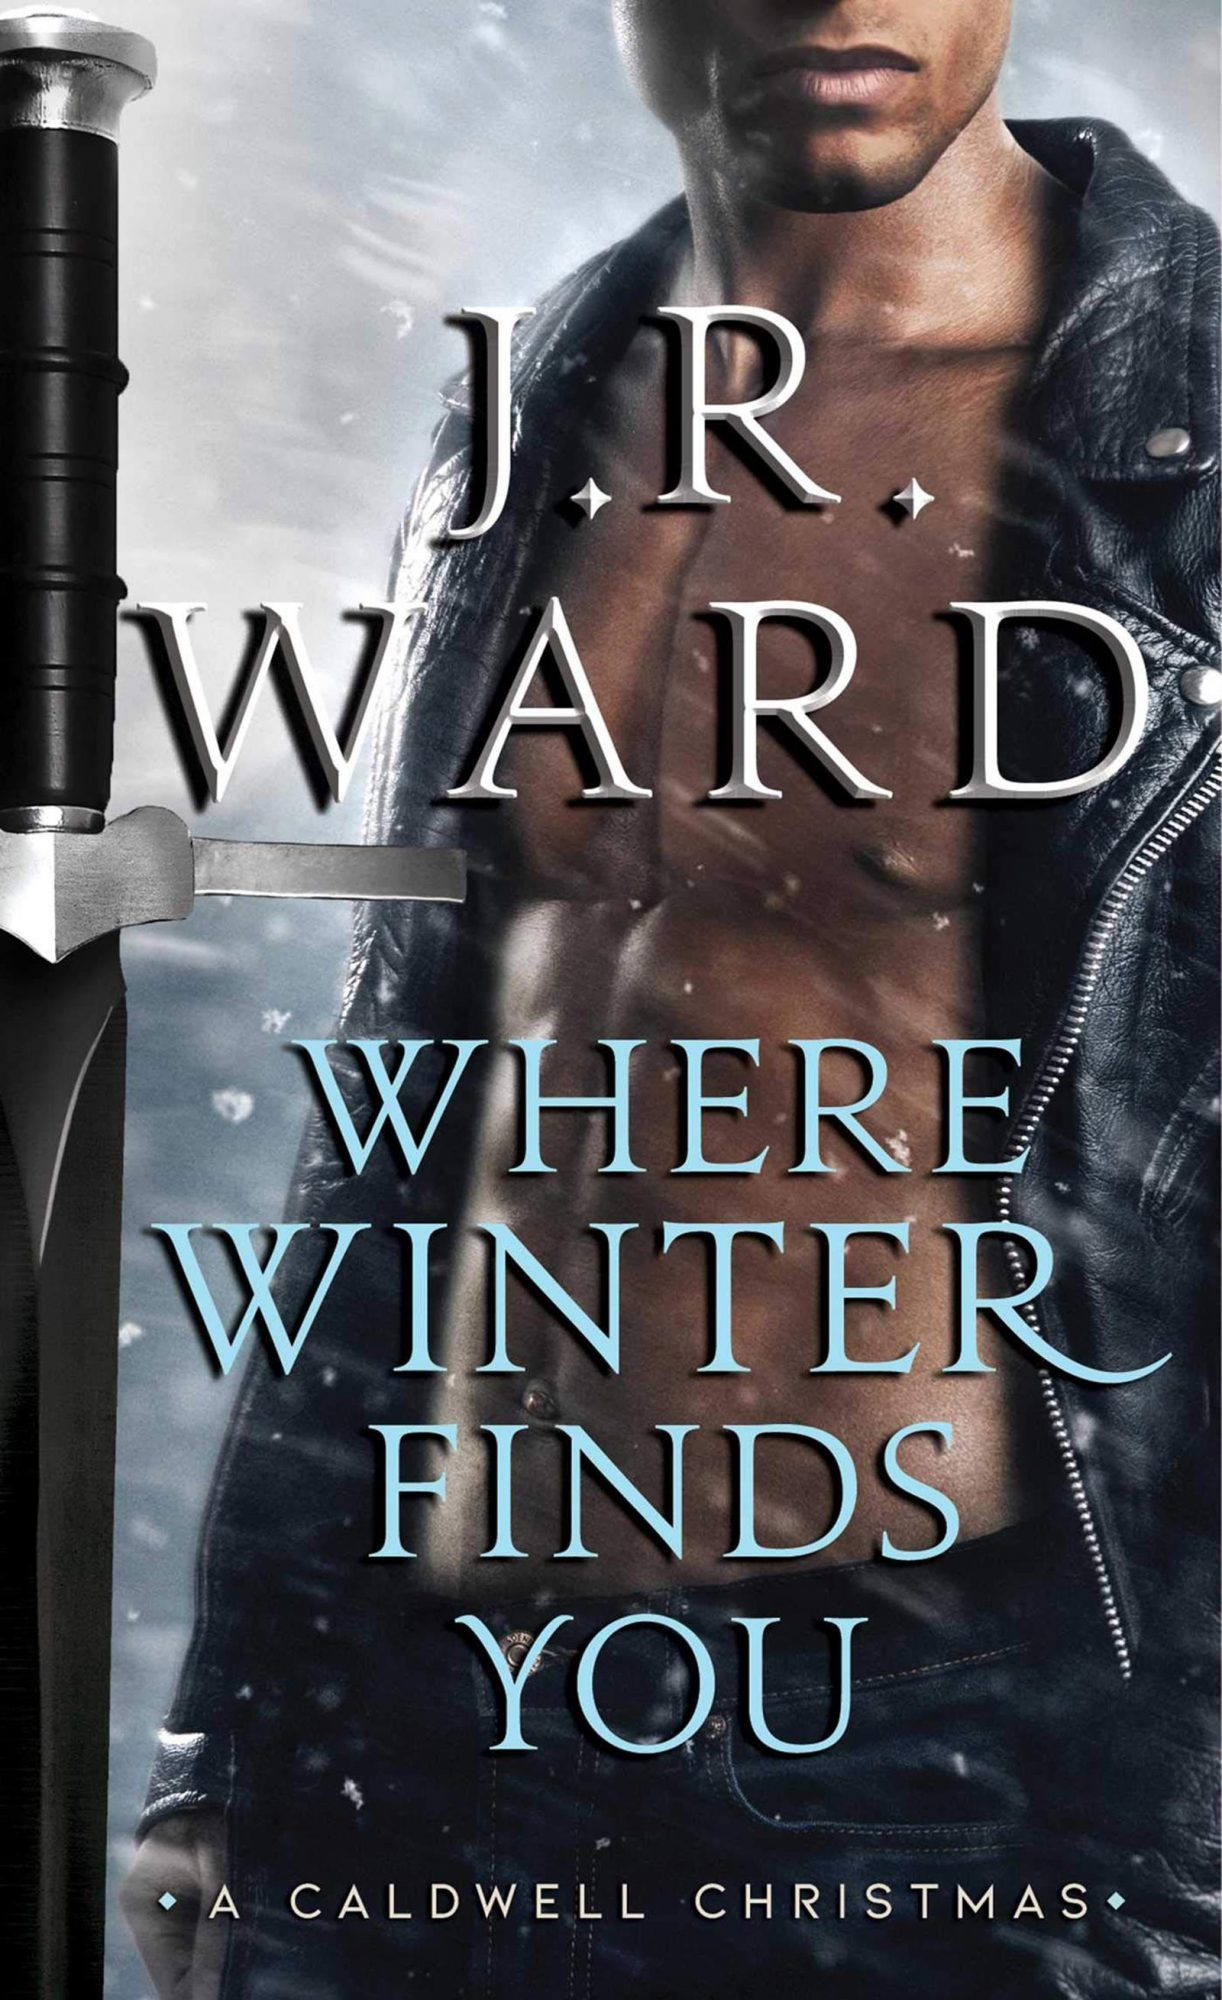 Where Winter Finds You by J.R. WardPublisher: Pocket Books